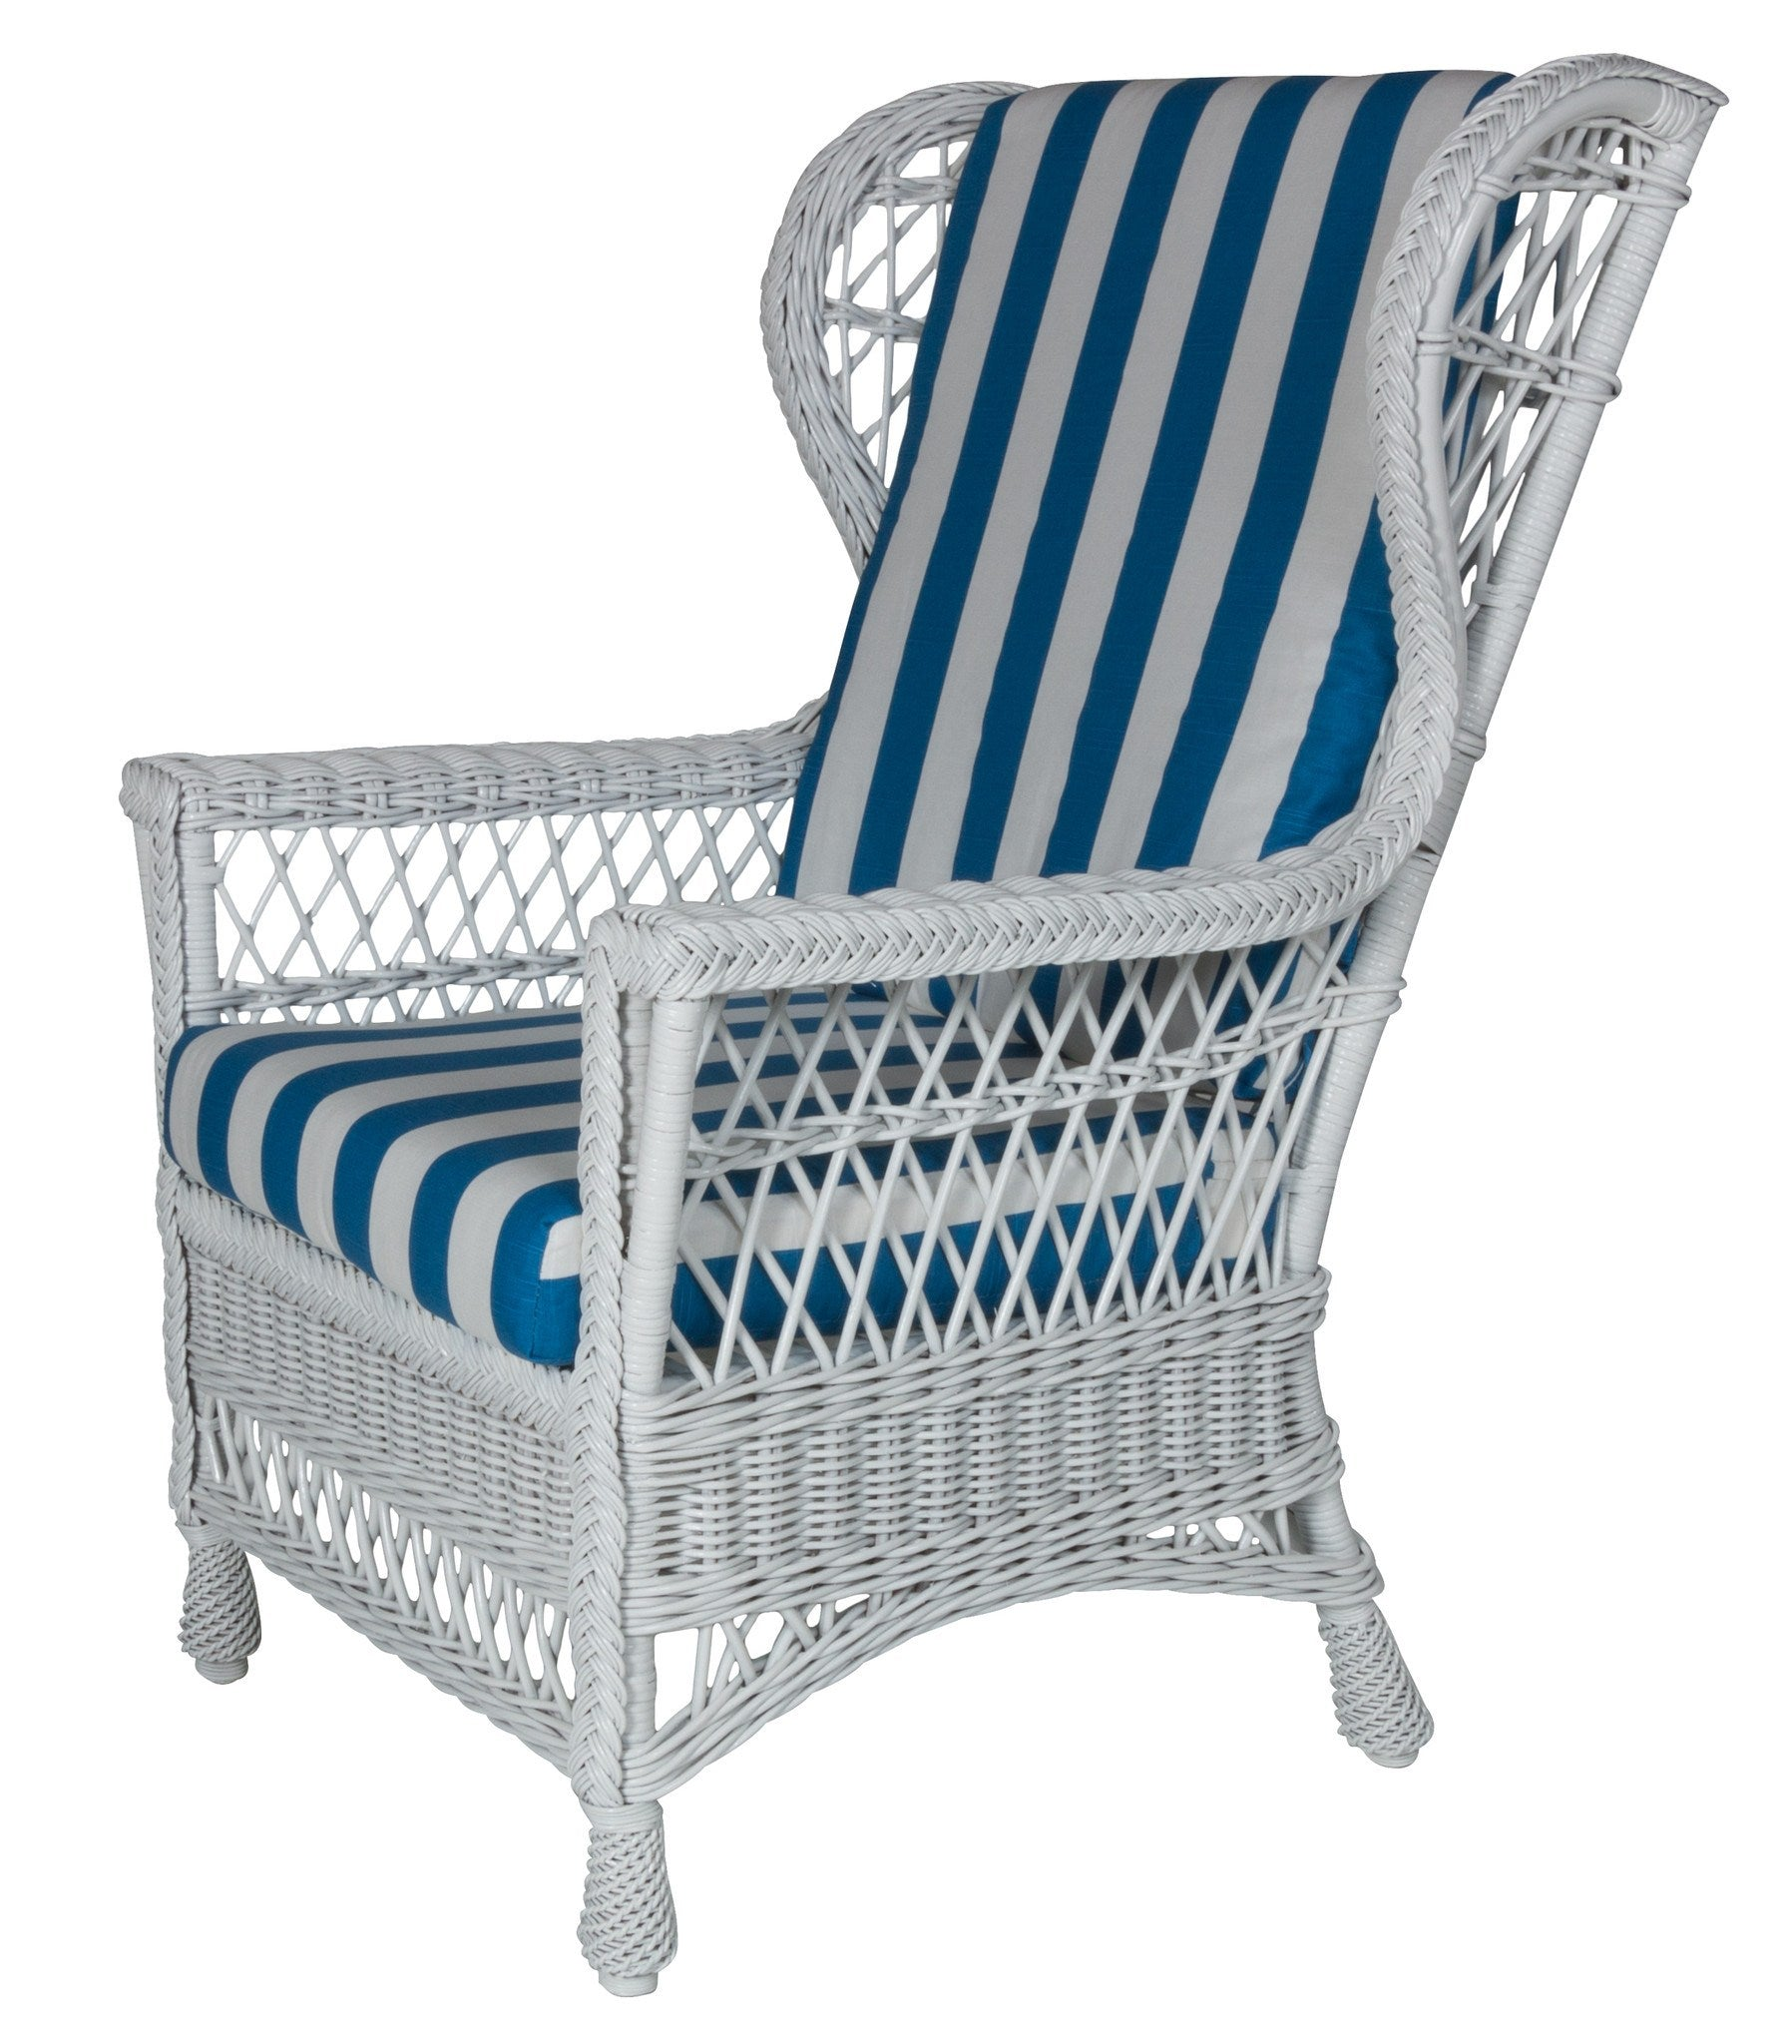 Designer Wicker & Rattan By Tribor Harbor Front Wing Chair by Designer Wicker from Tribor Chair - Rattan Imports